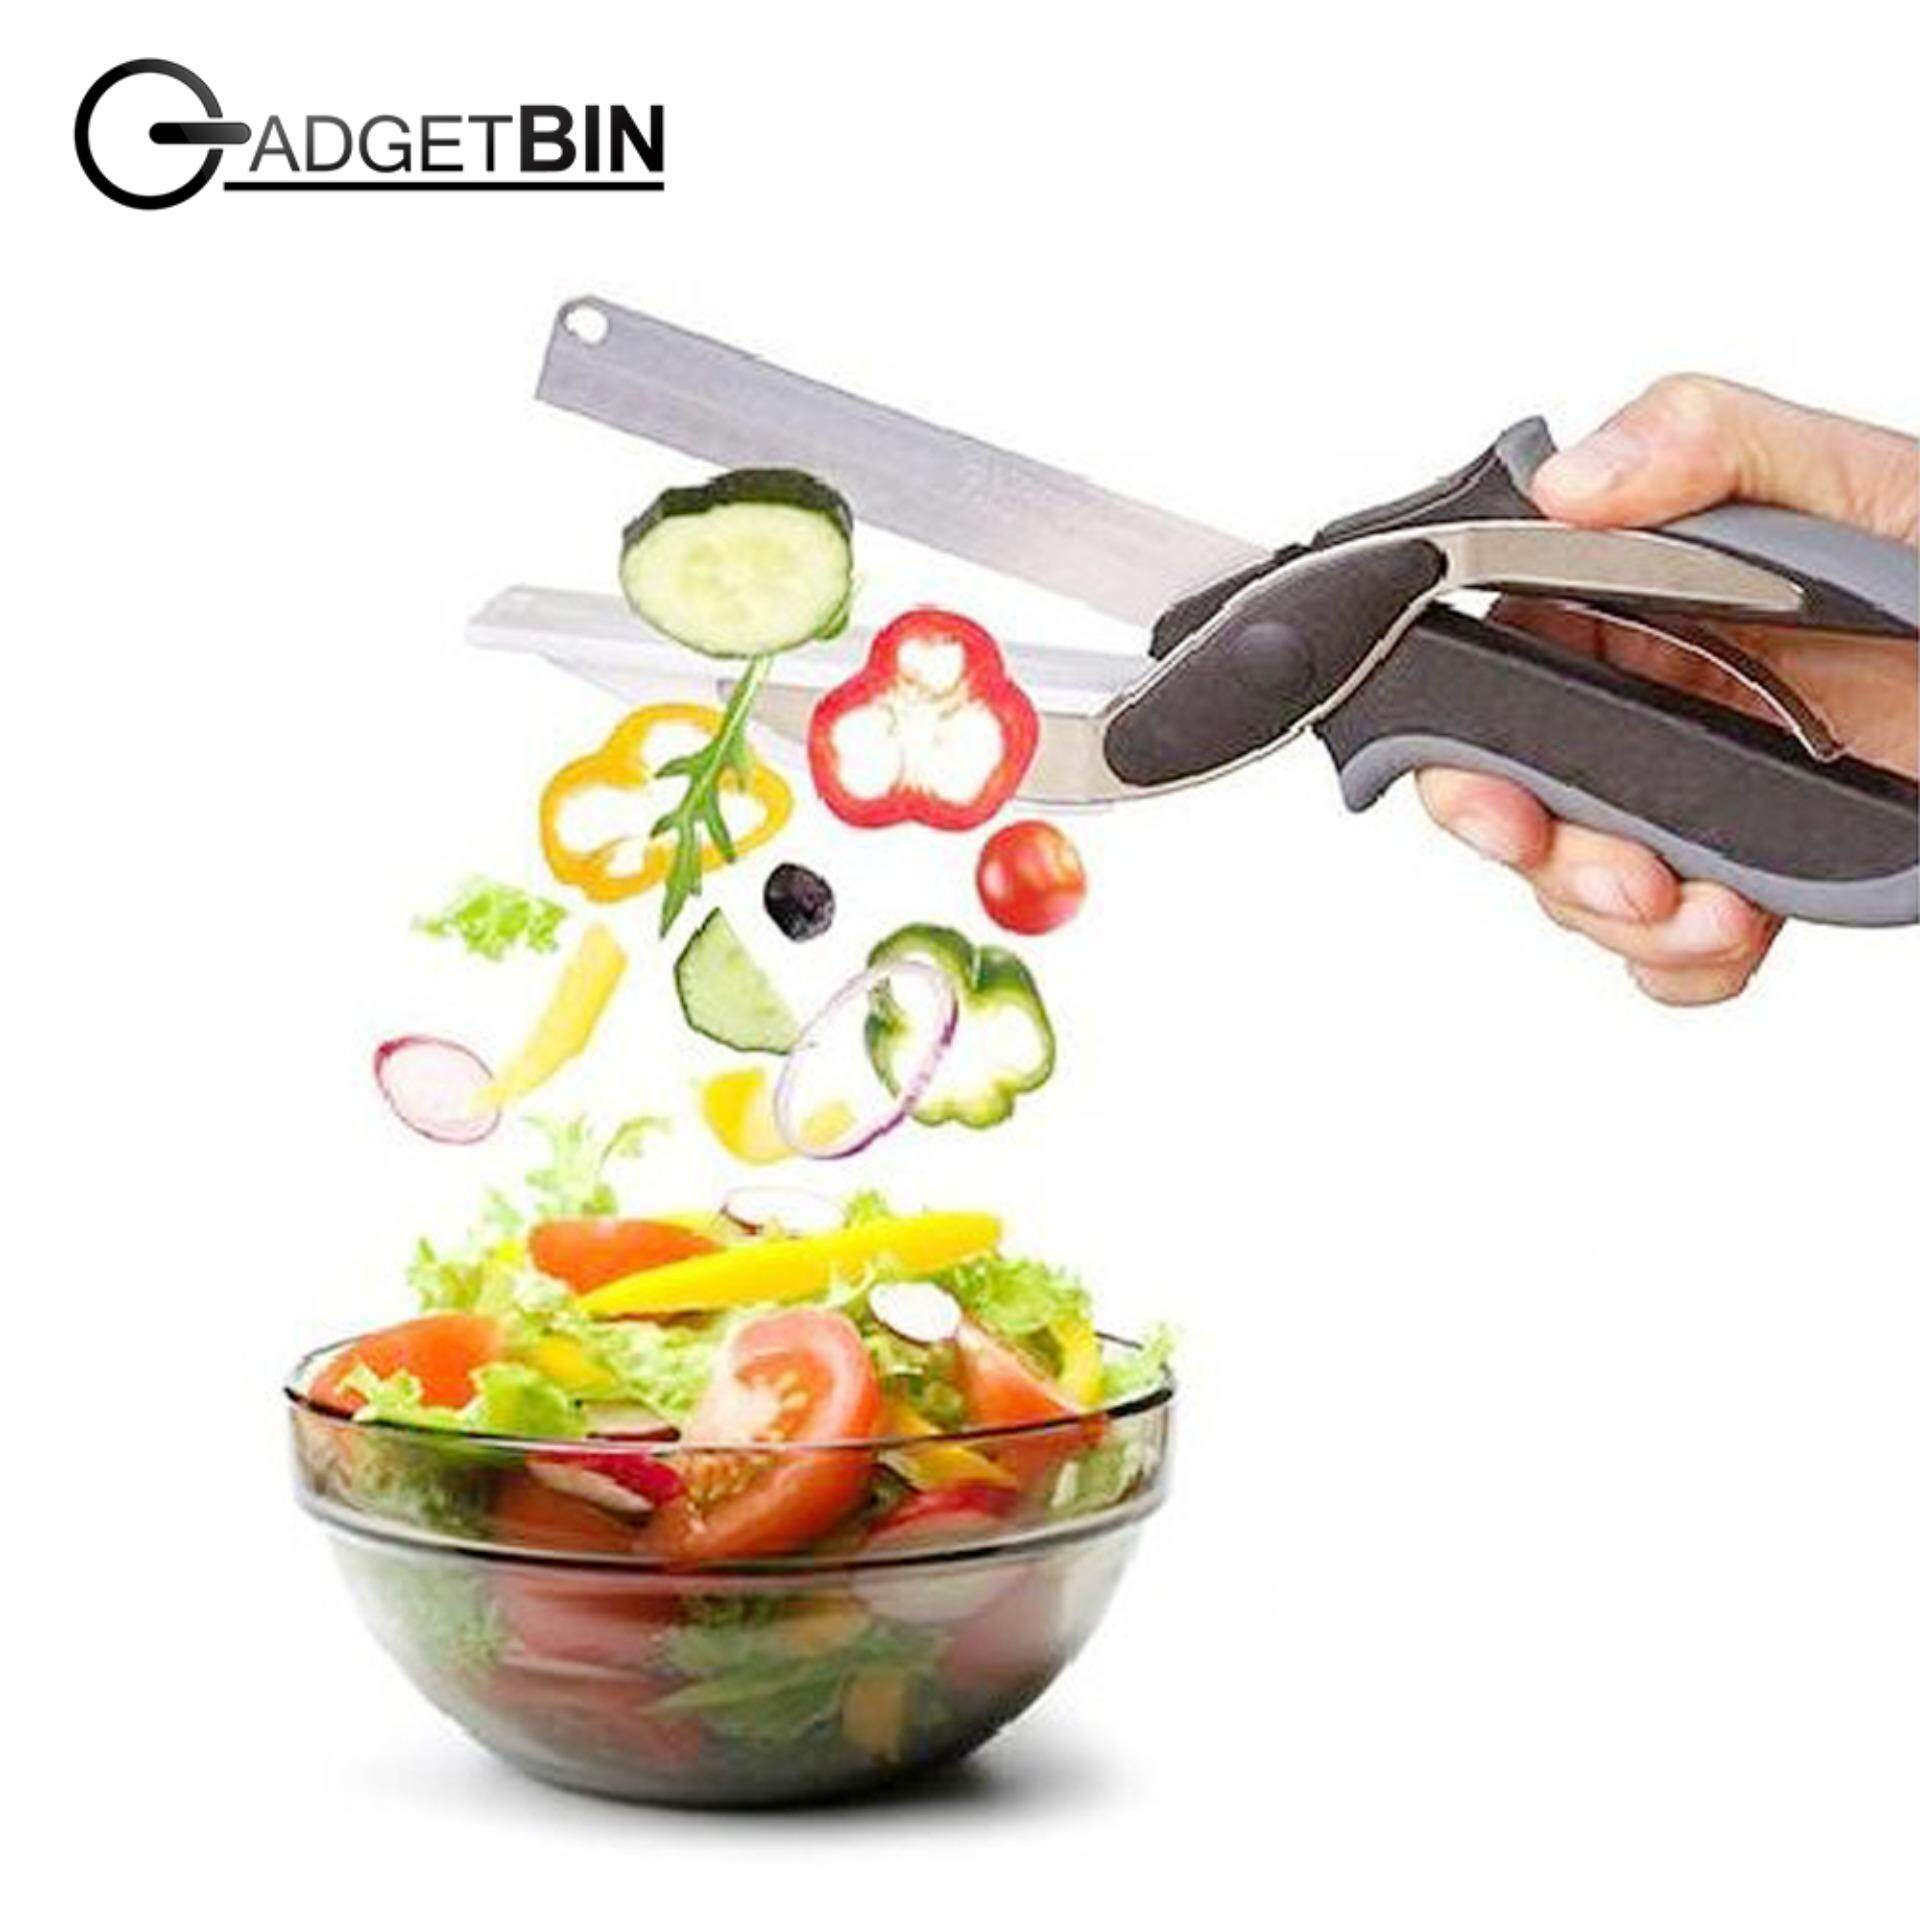 Clever Cutter 2-In-1 Knife & Cutting Board Scissors By Gadgetbin.